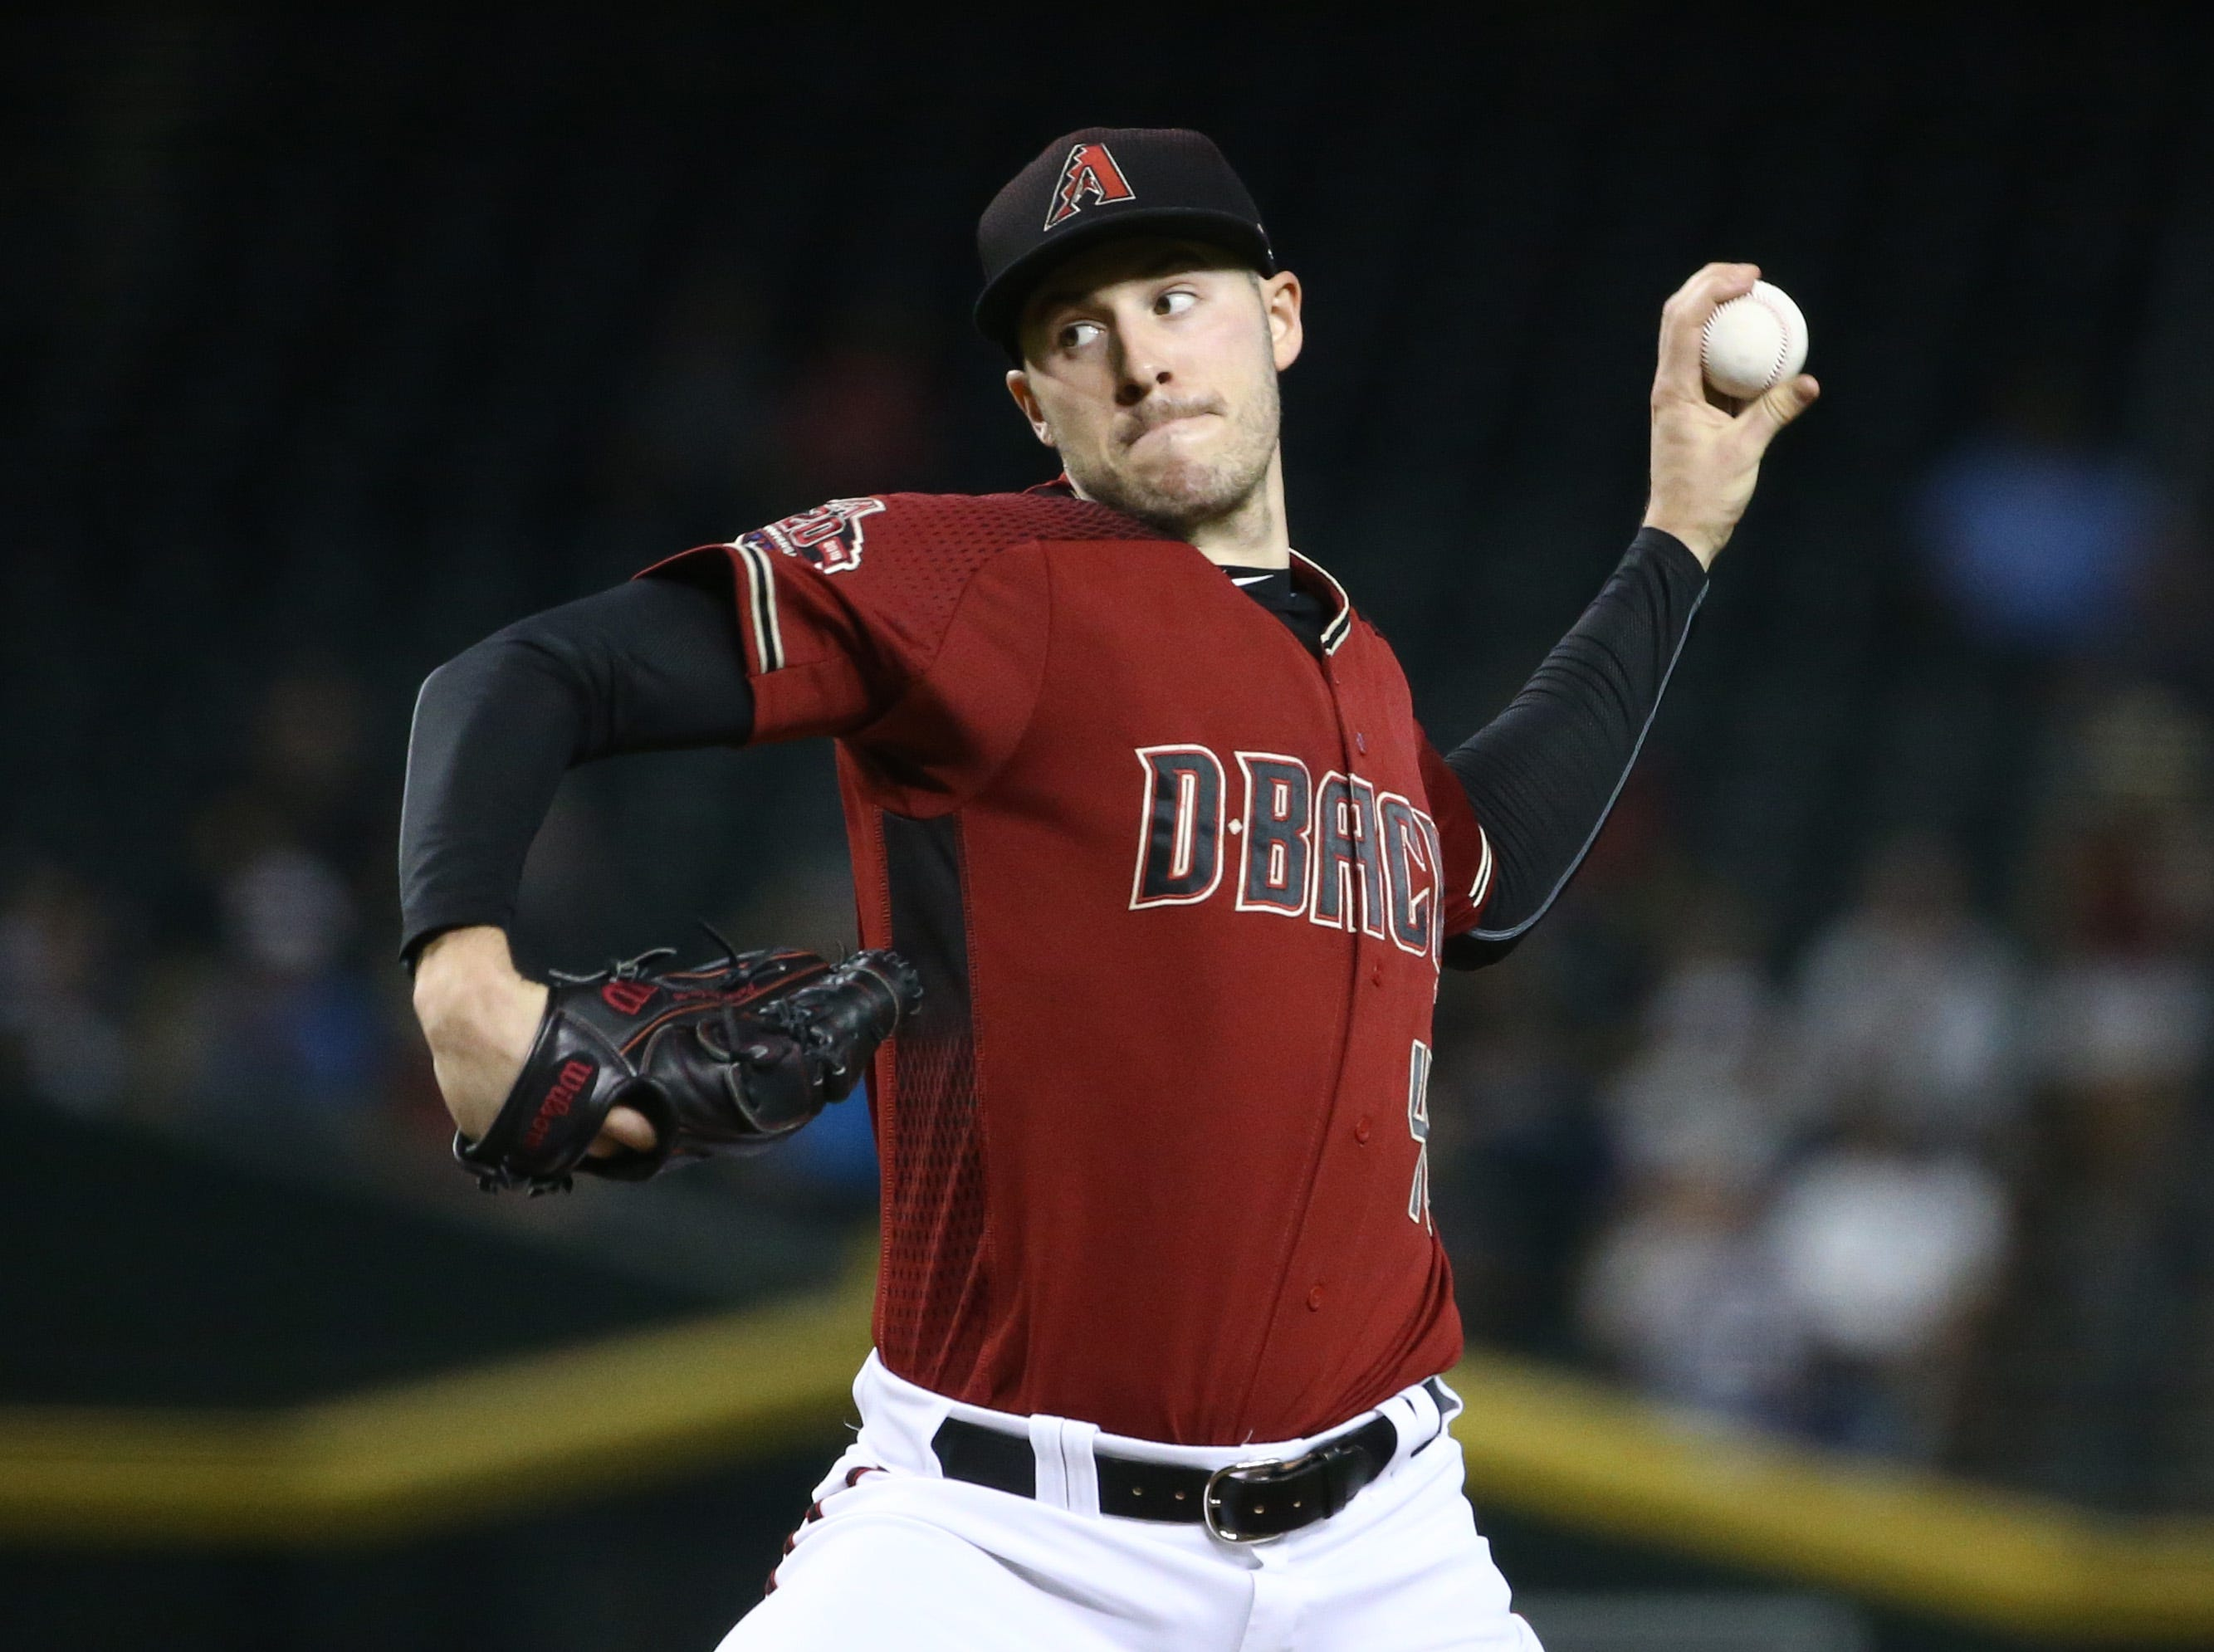 Arizona Diamondbacks pitcher Patrick Corbin throws to the Philadelphia Phillies in the first inning on Aug. 8, 2018, at Chase Field in Phoenix, Ariz.